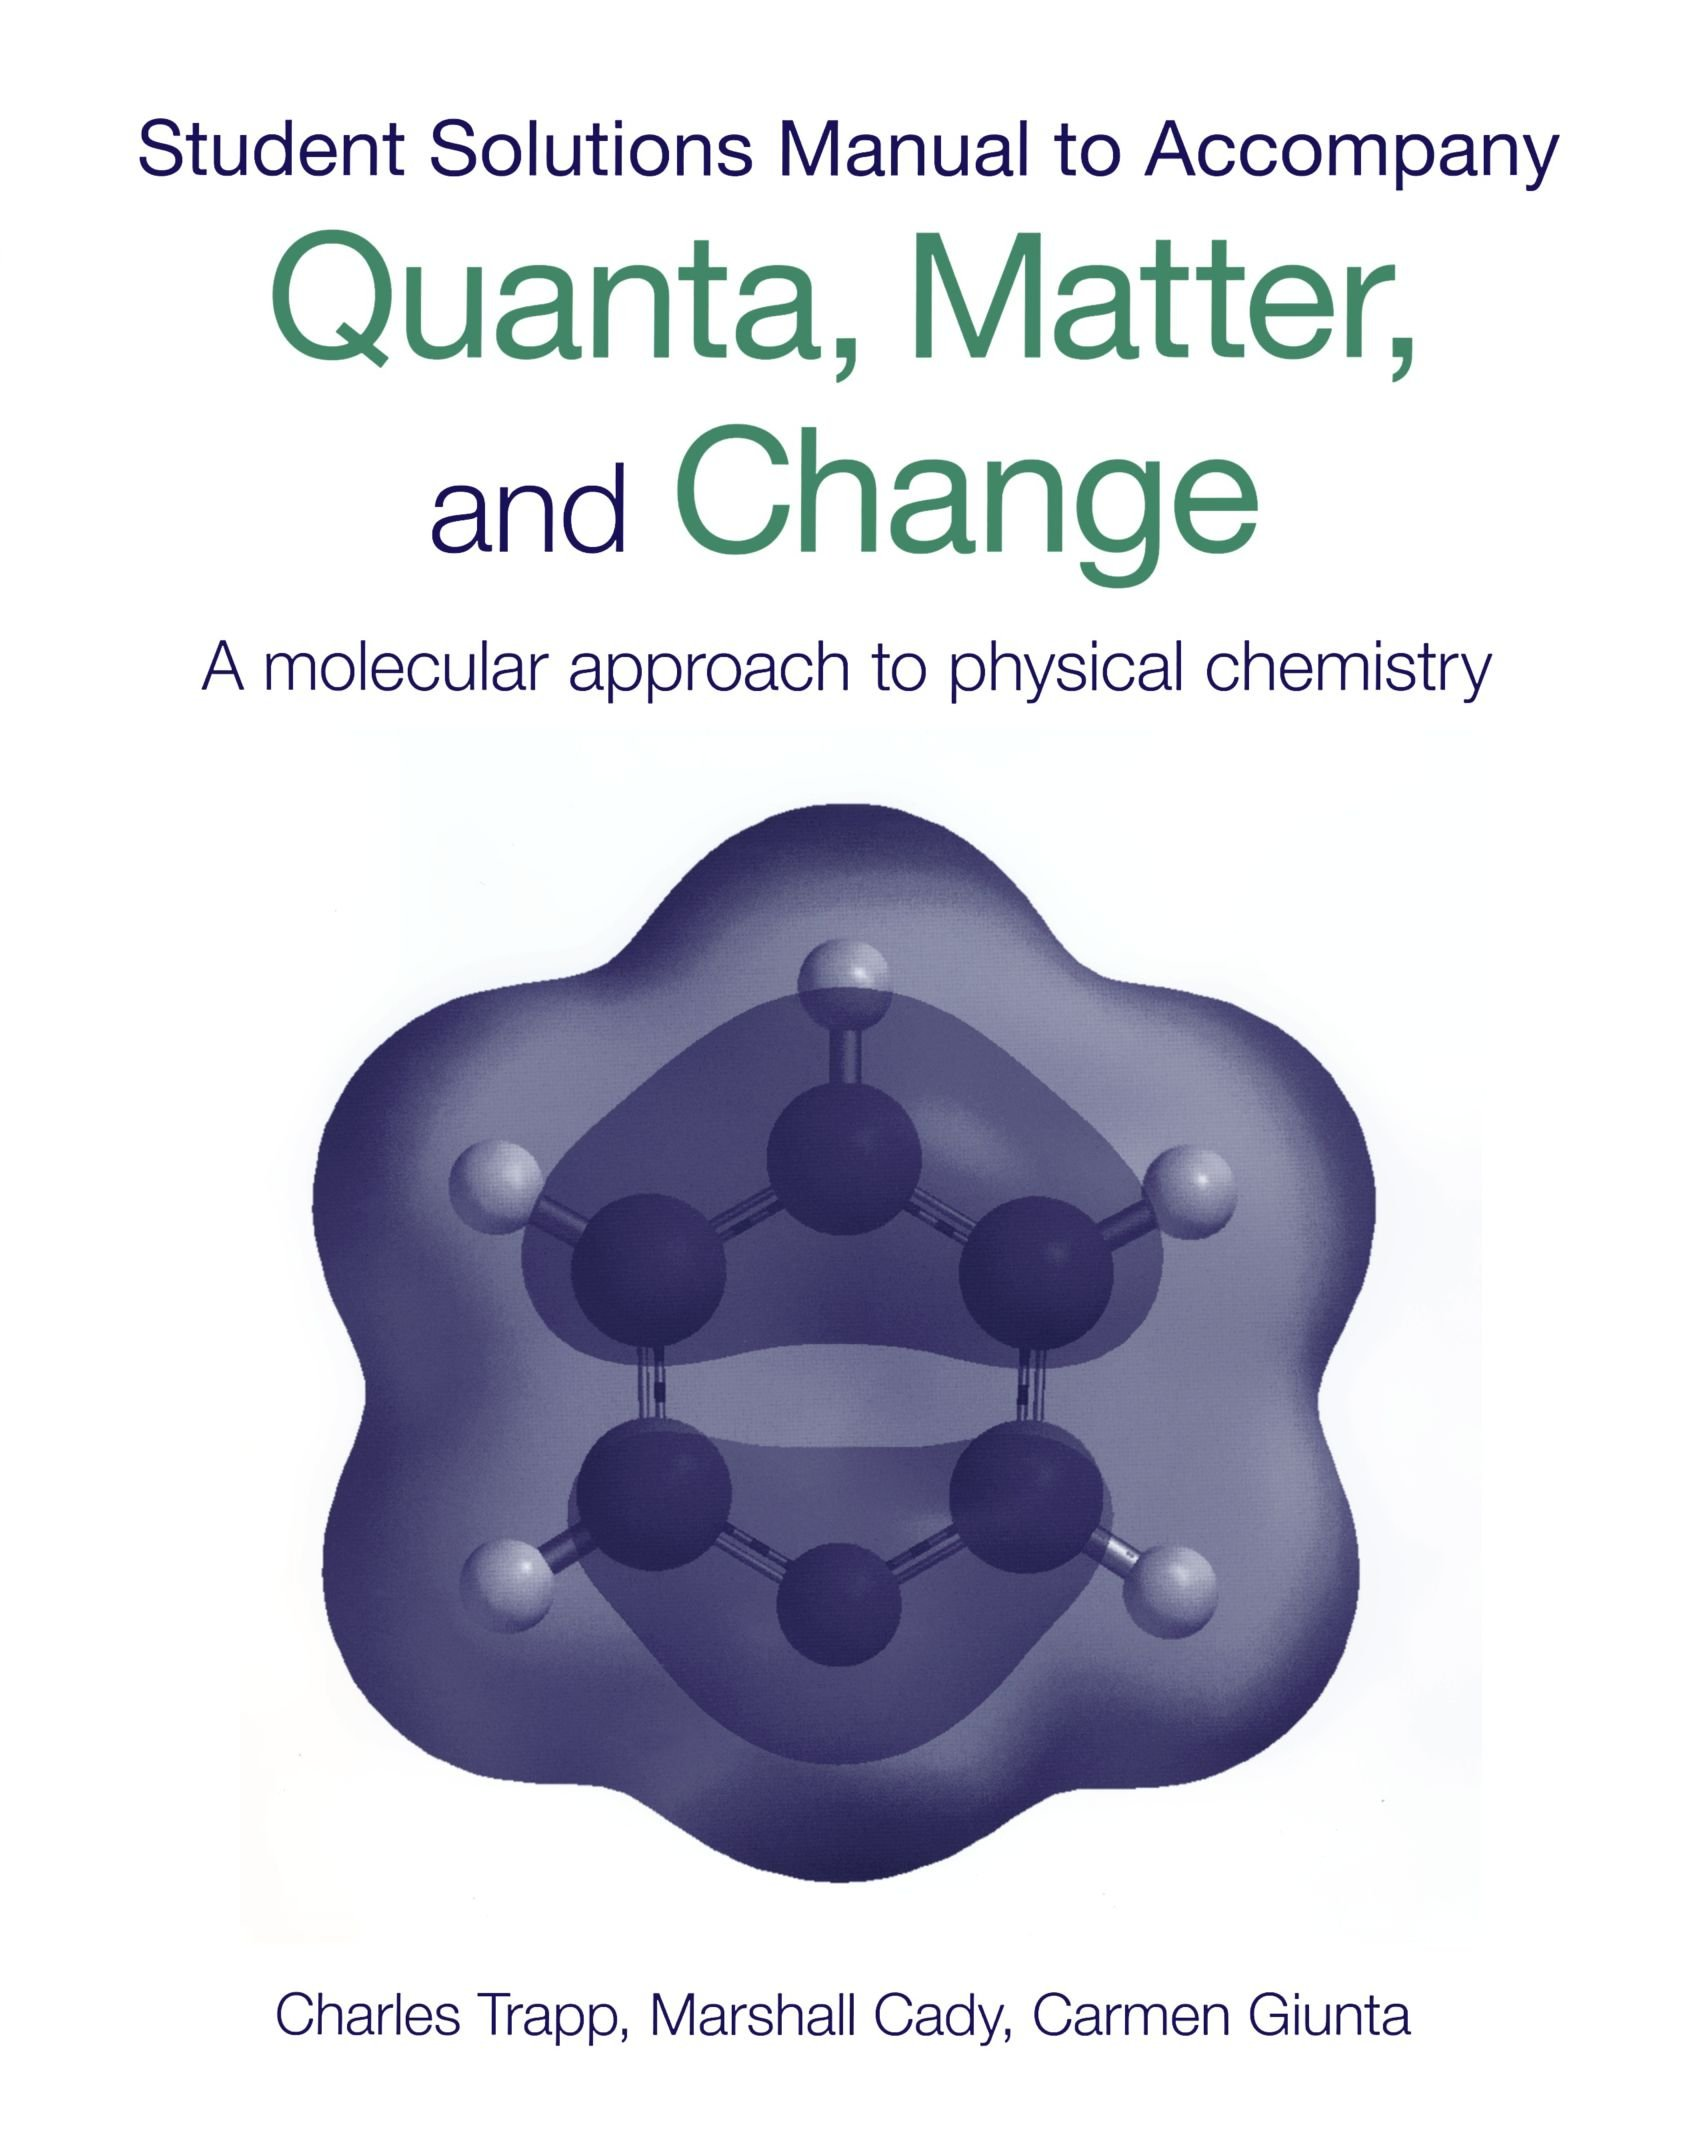 Student's Solutions Manual To Accompany Quanta, Matter & Change: A  Molecular Approach to Physical Chemistry: Charles Trapp: 9780199559077:  Amazon.com: Books